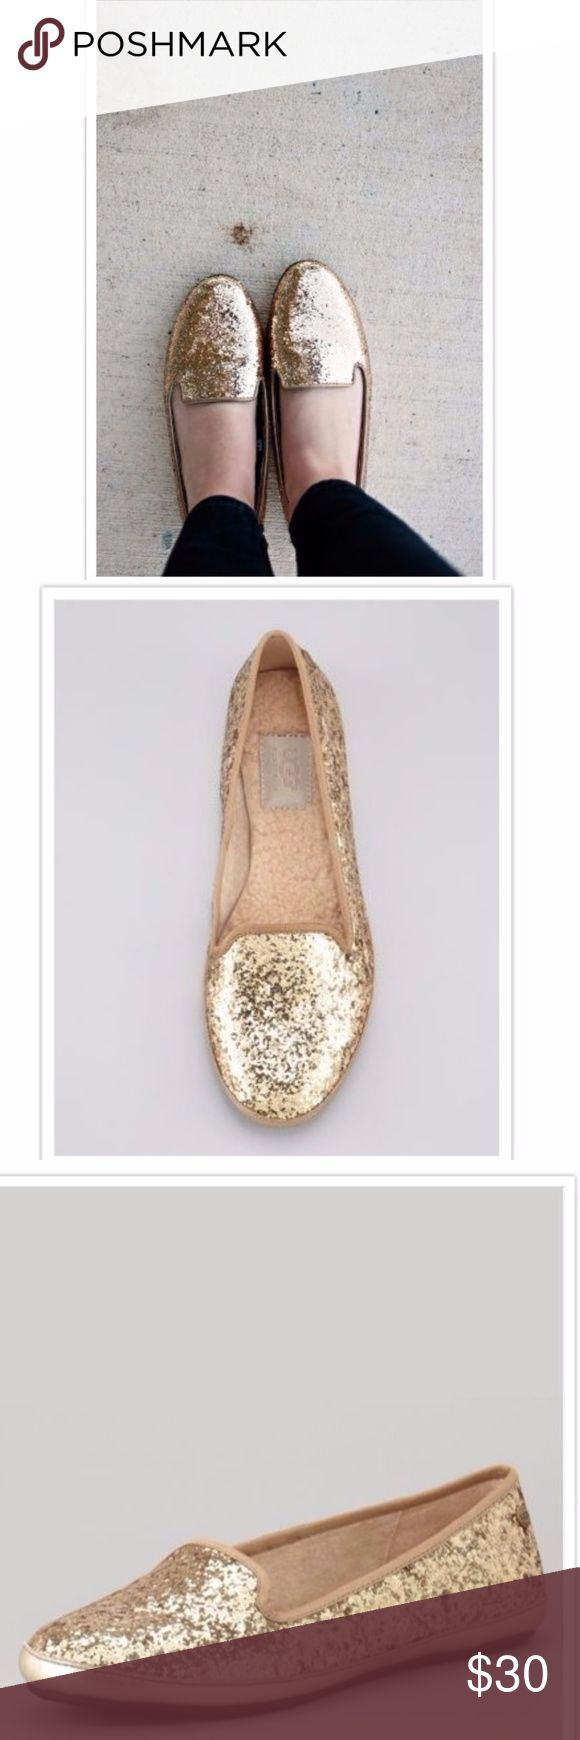 UGG Gold Metallic Ballet Flat SZ 7 These were worn maybe twice.. Excellent Condition.. Size7 Womens UGG Shoes Flats & Loafers